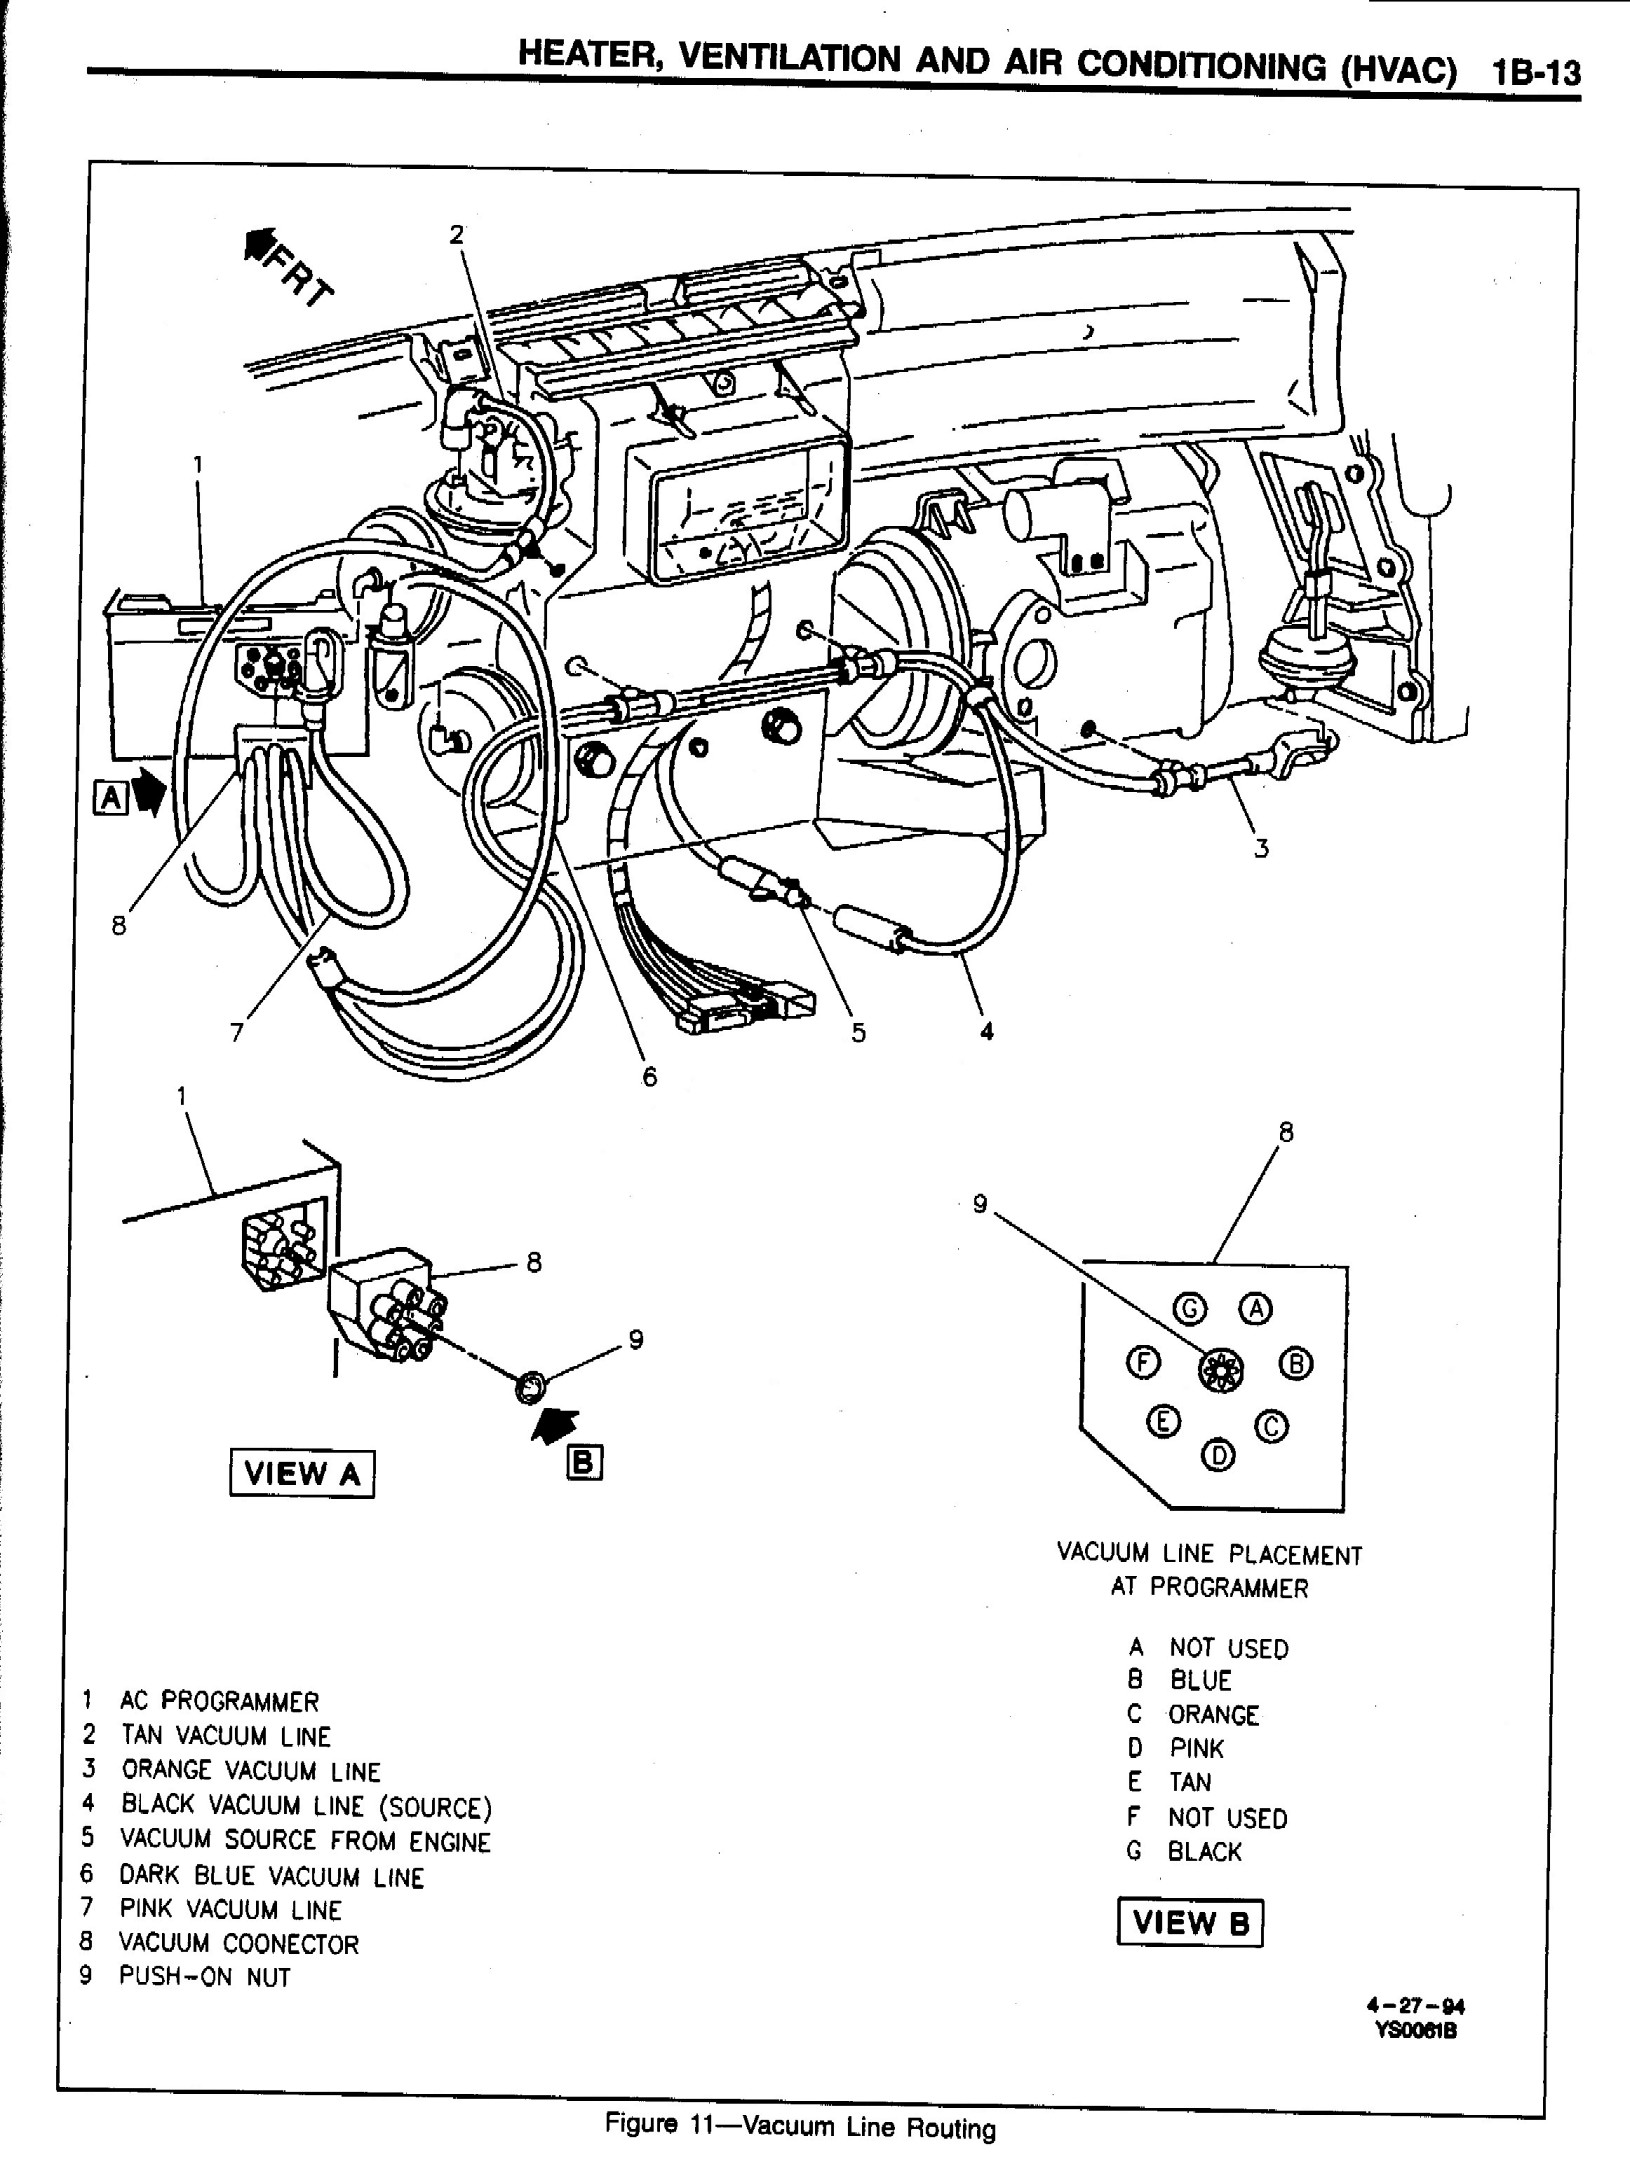 1993 Lt1 Engine Diagram LS1 Vacuum Lines Diagram Wiring